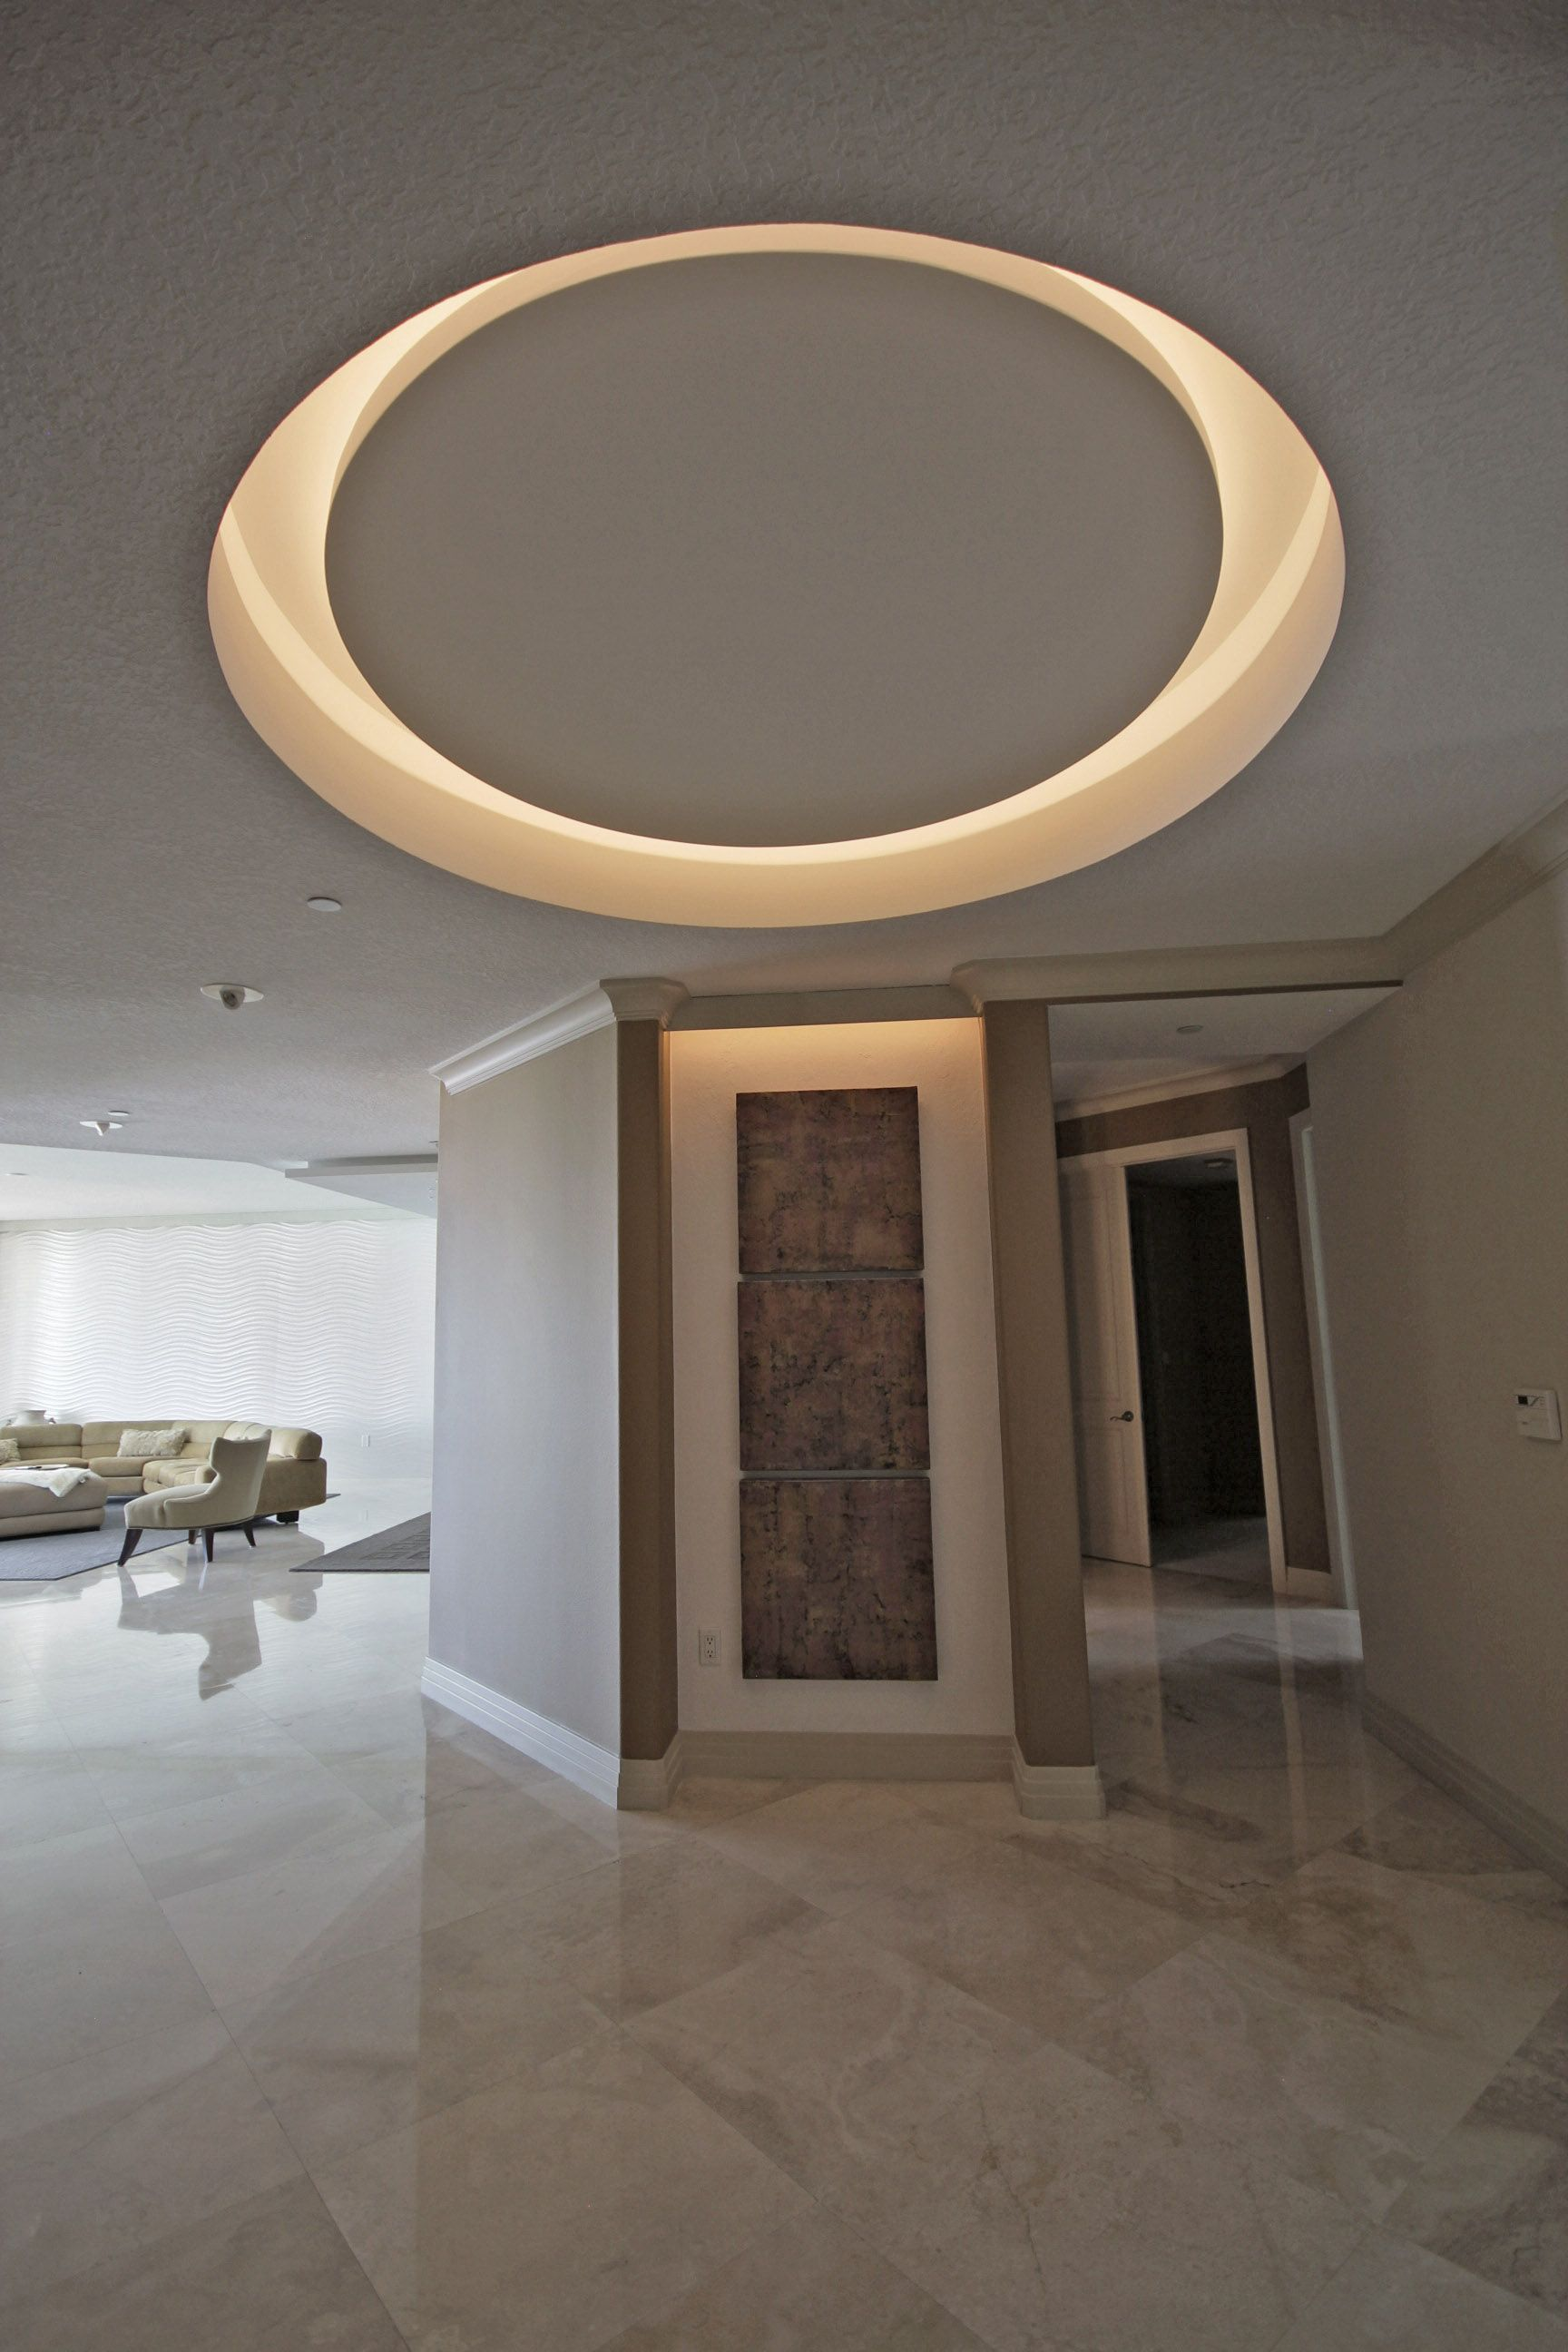 recessed circle with LED lights | Moonstone Deets | Pinterest ... for Roof Lamp Design  588gtk